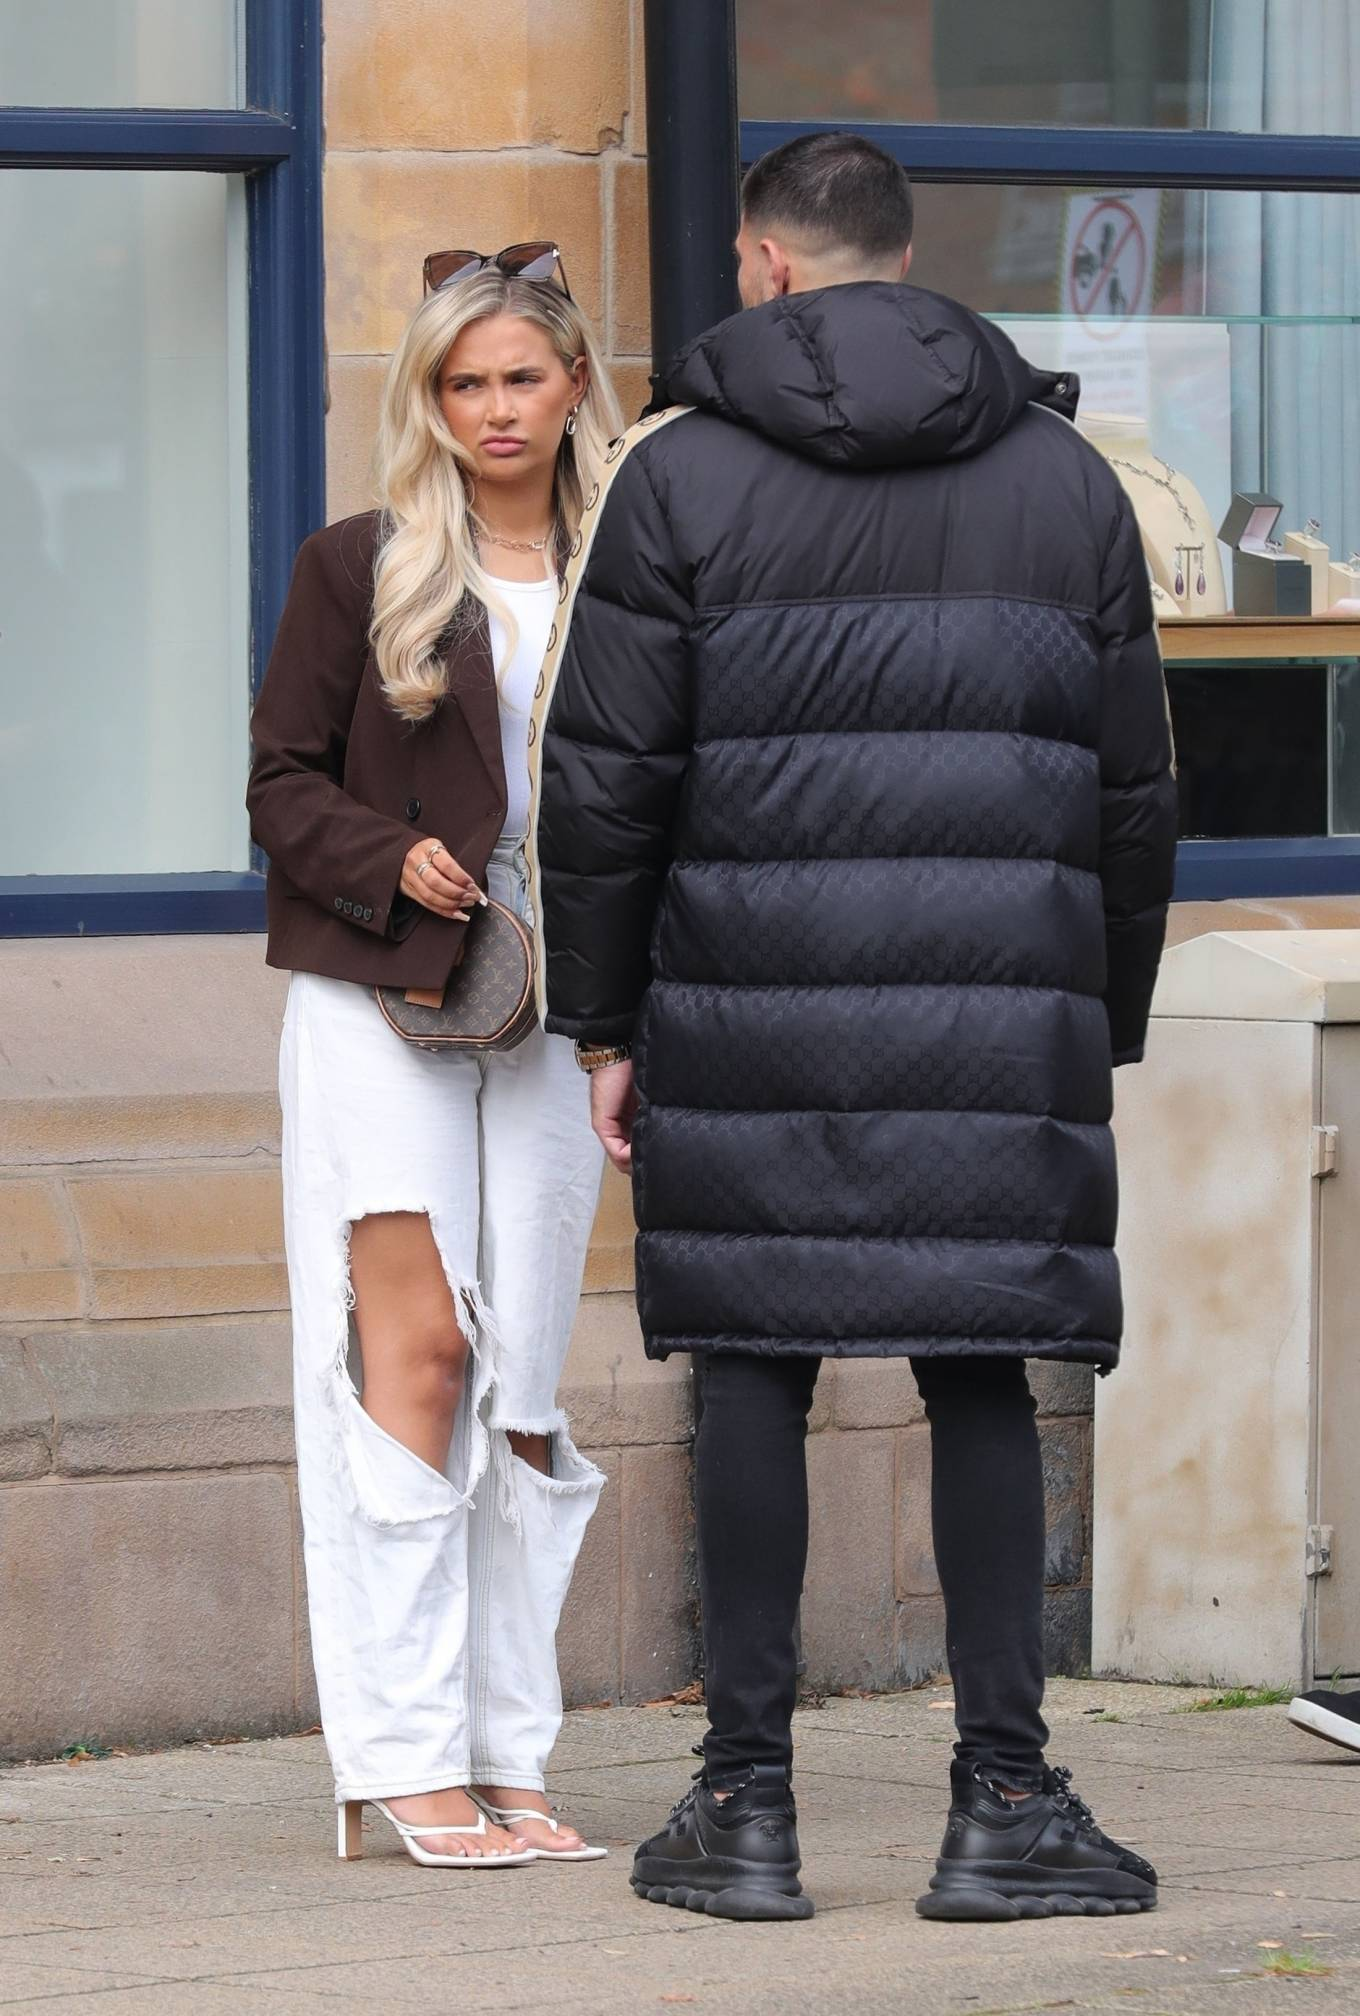 Molly-Mae Hague 2020 : Molly-Mae Hague and Tommy Fury – Seen while out in Cheshire -02